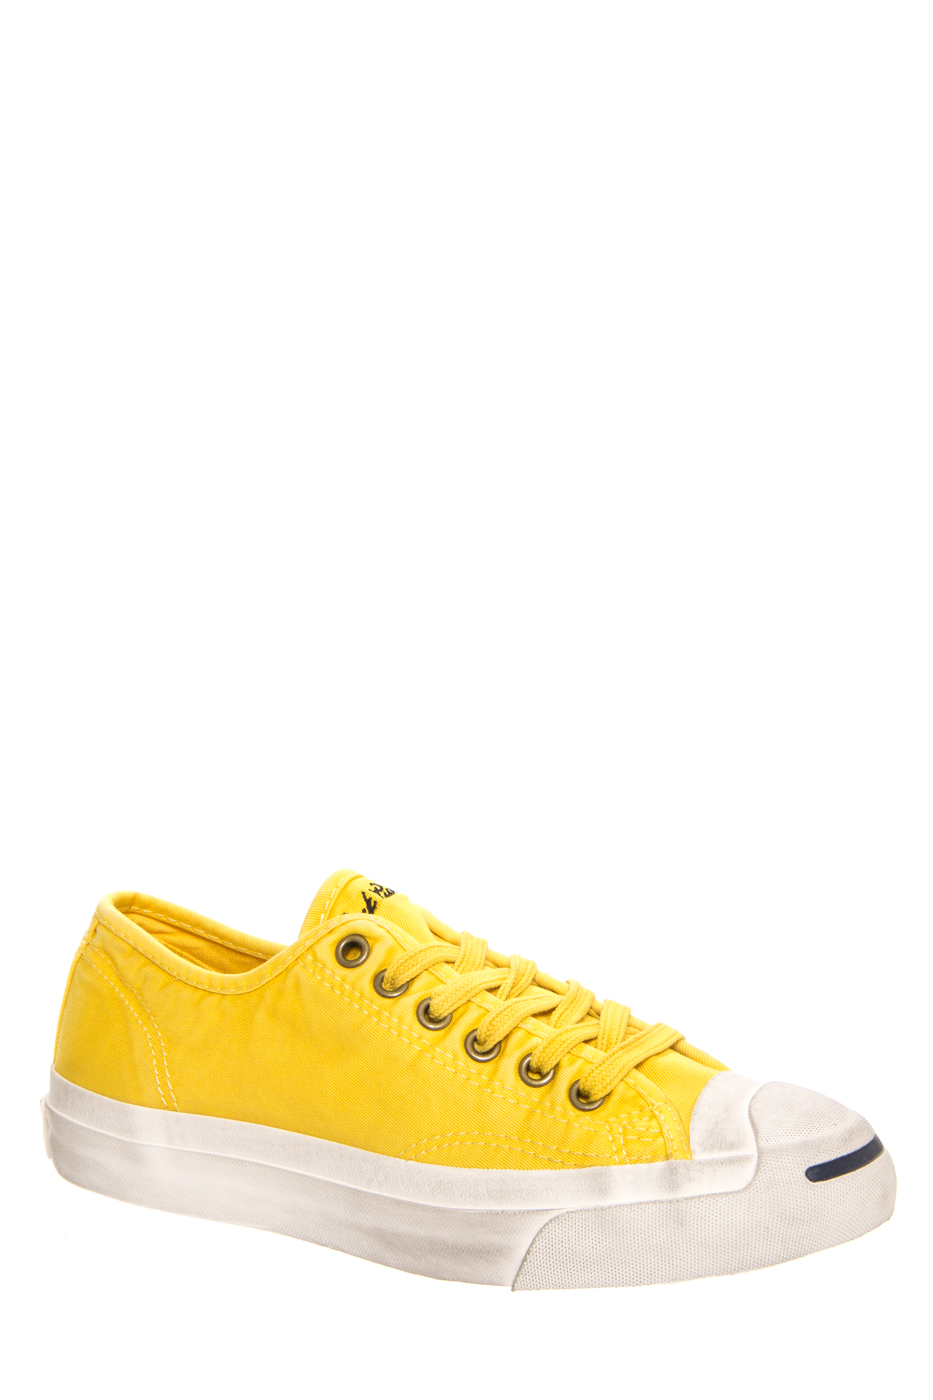 02a039347 Converse Jack Purcell LTT Ox quotPatchworkquot Sneakers